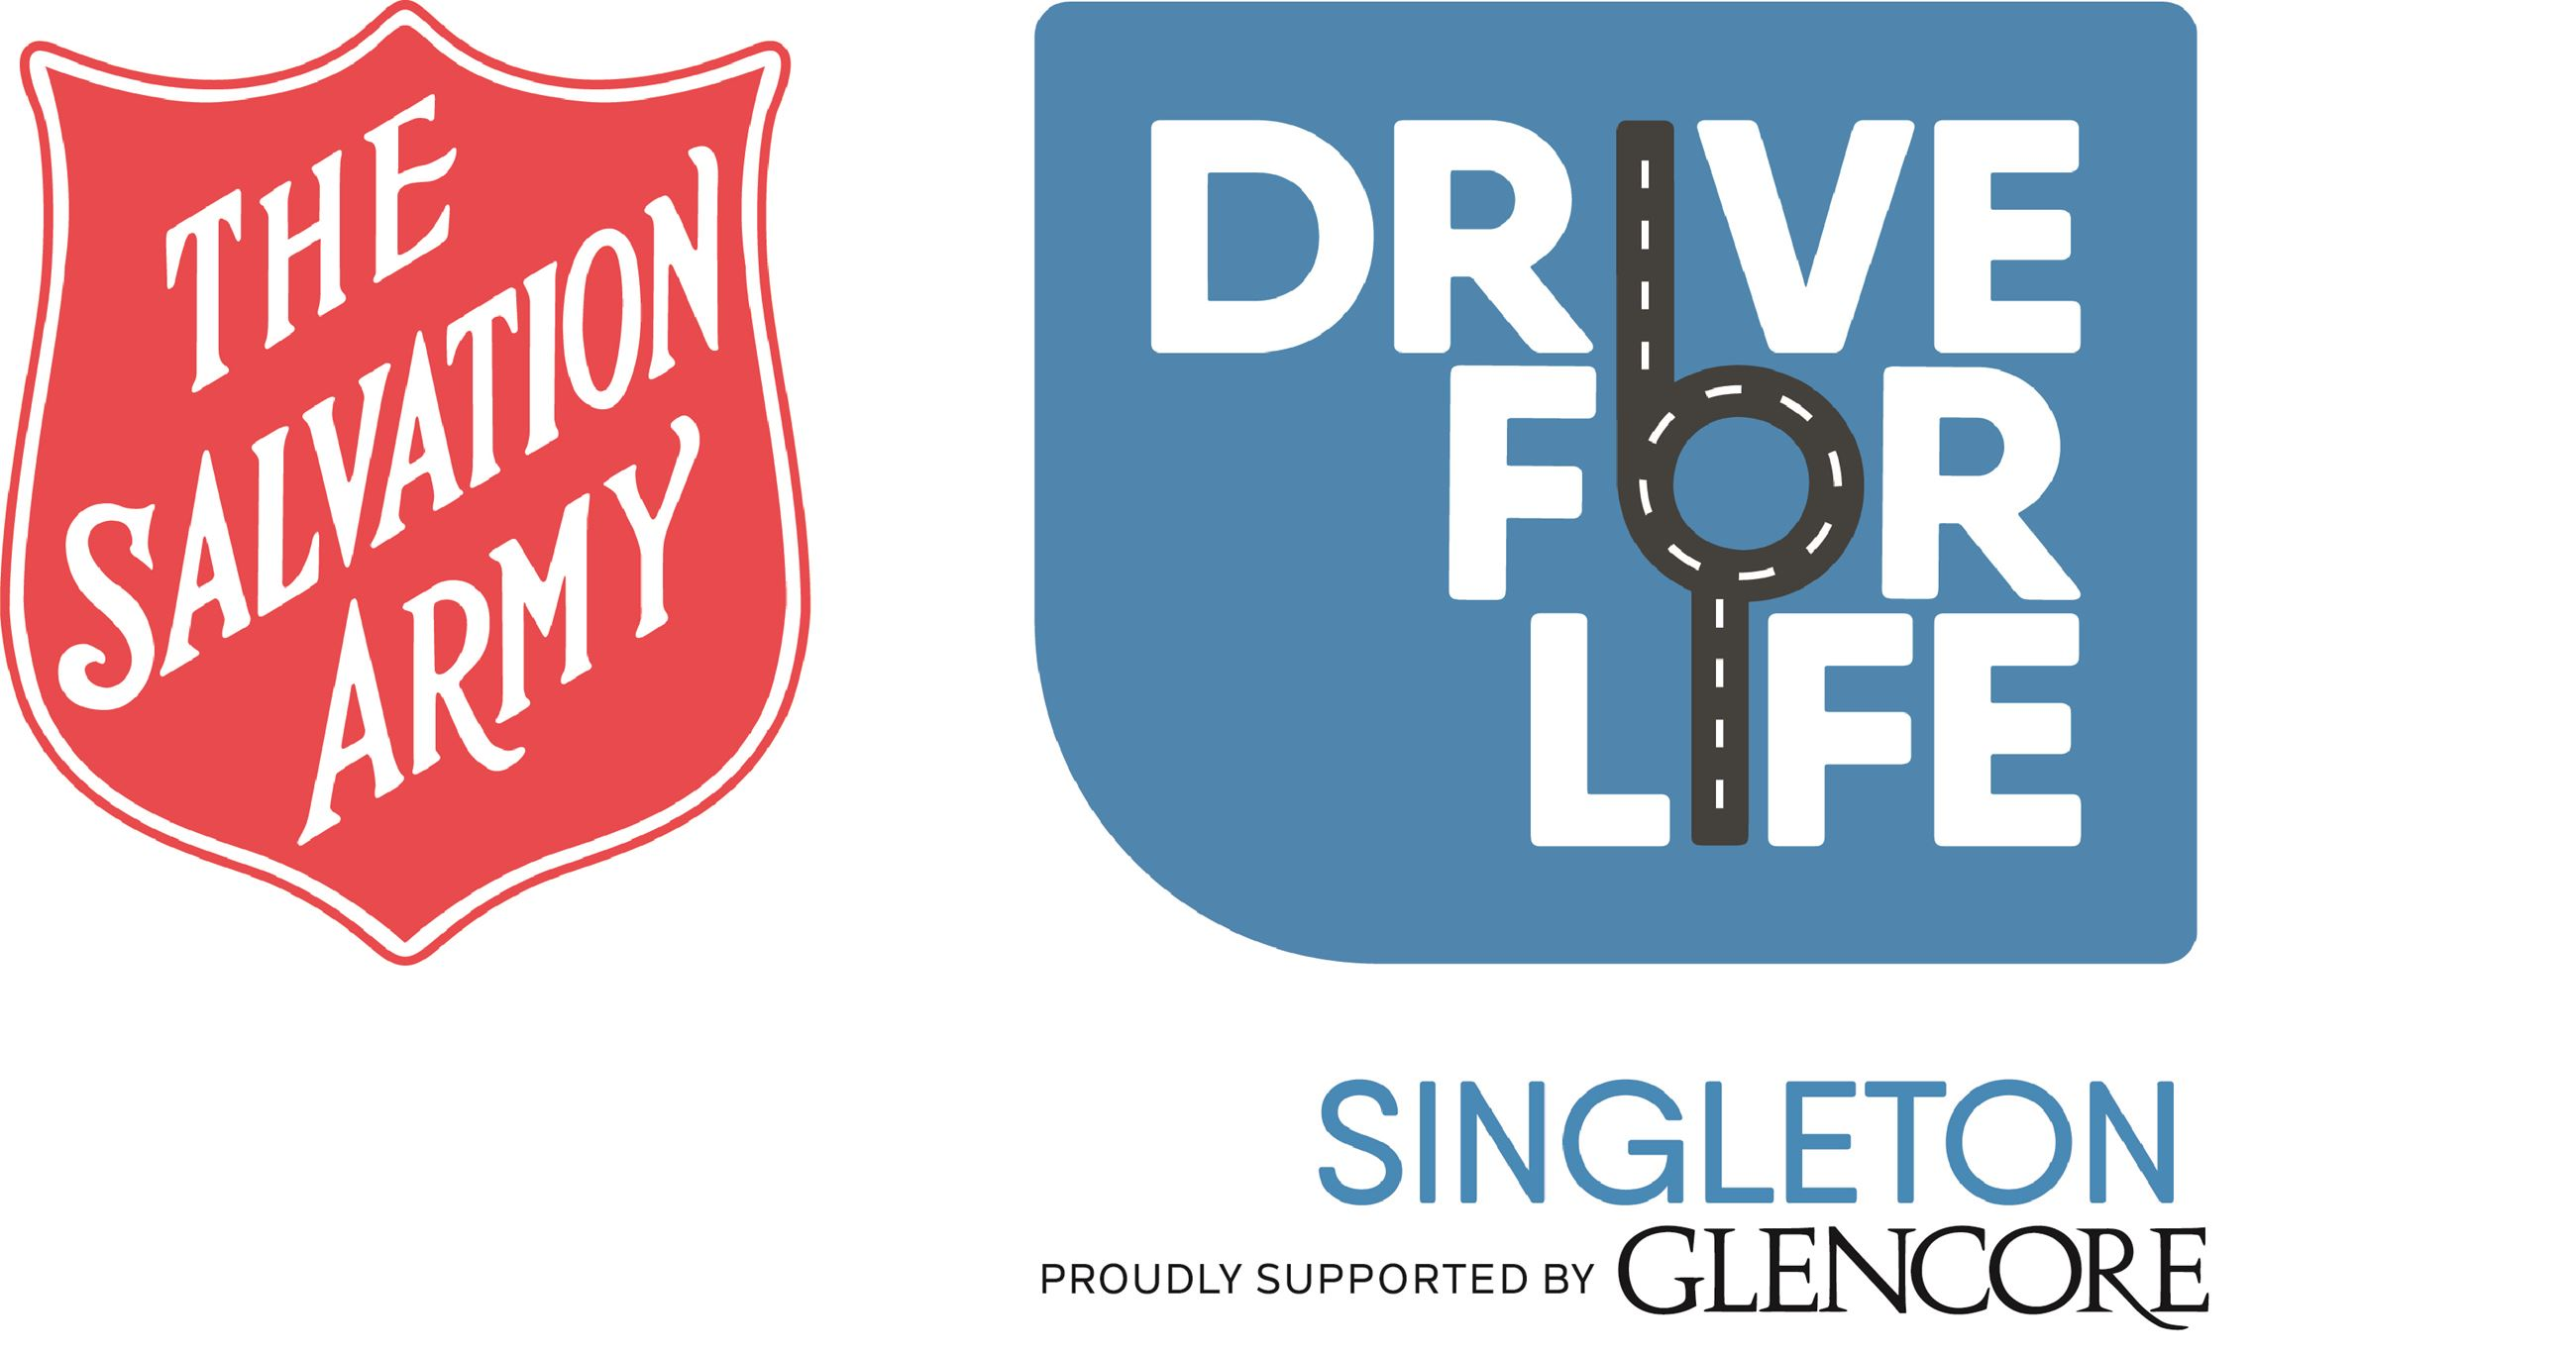 Salvation Army and Drive For Life - Proudly supported by Glencore